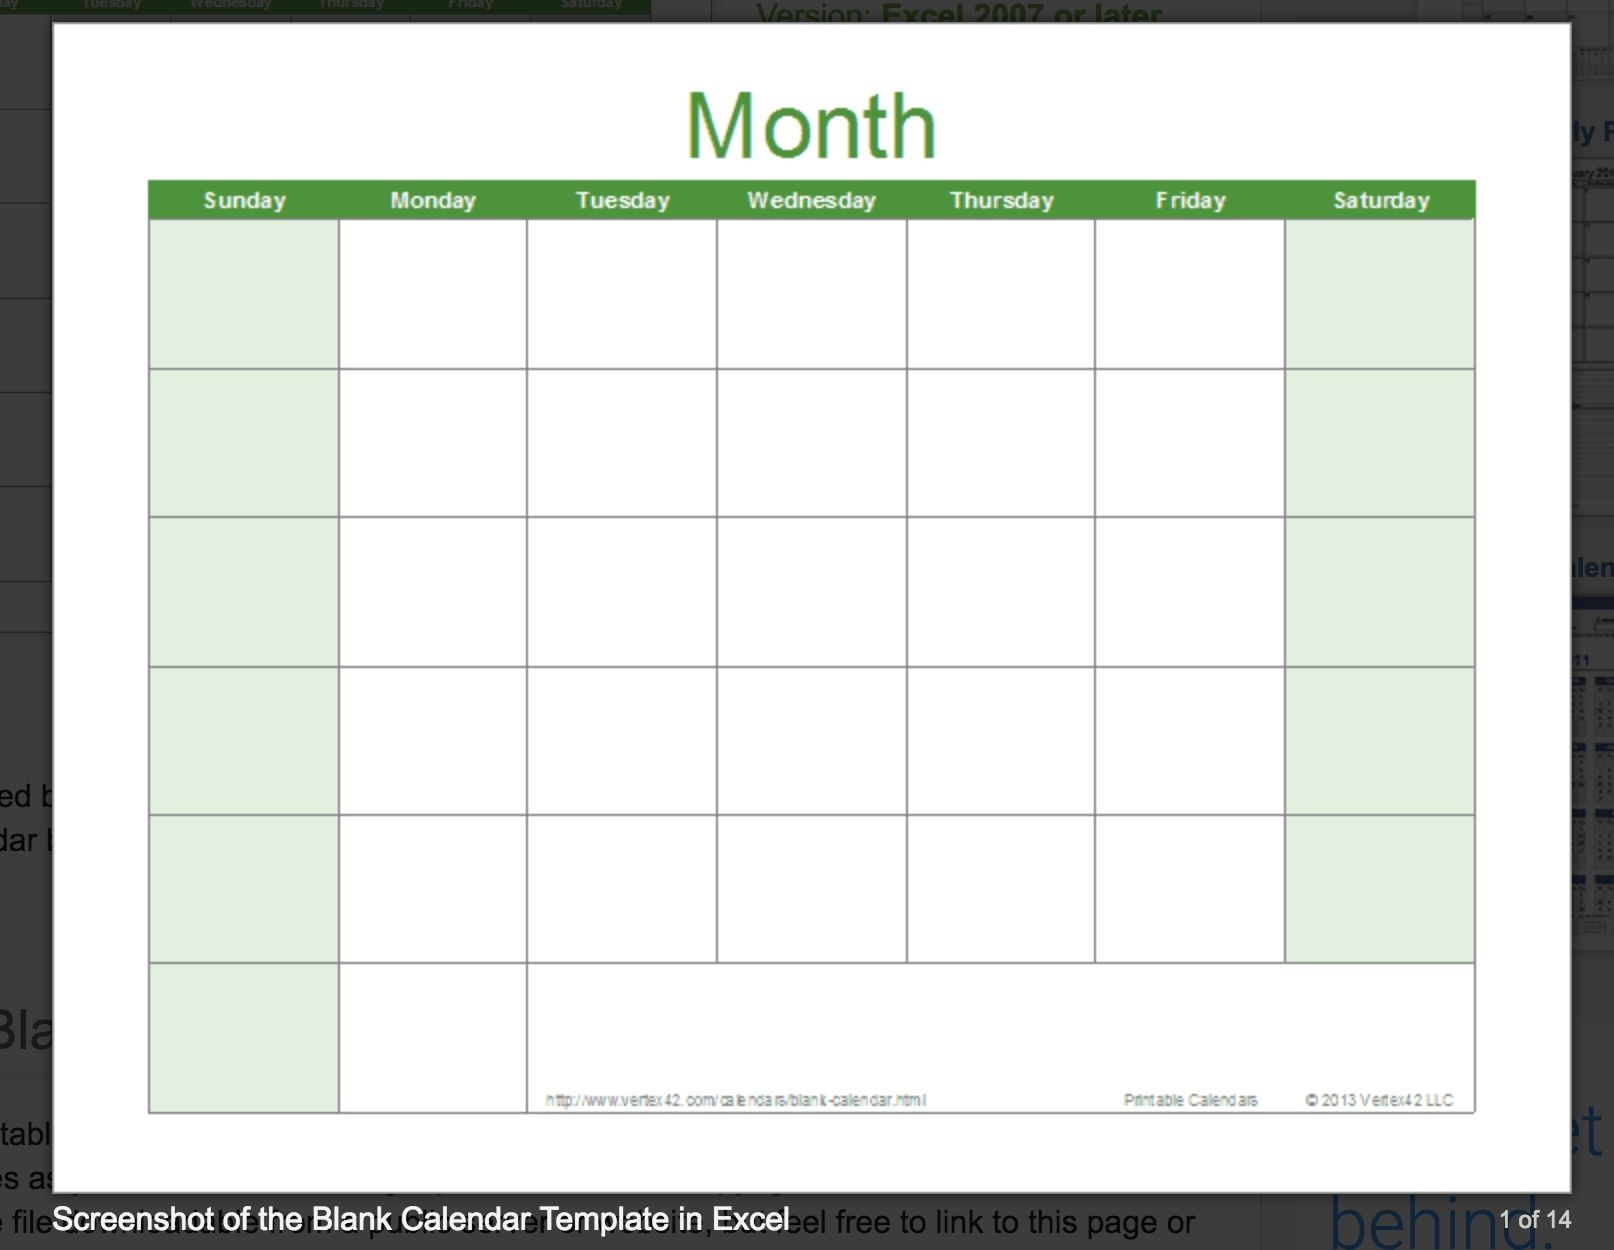 Take Printable Blank Calendar Week 2019 | Blank Calendar within Monday Through Friday Calendar Template Excel